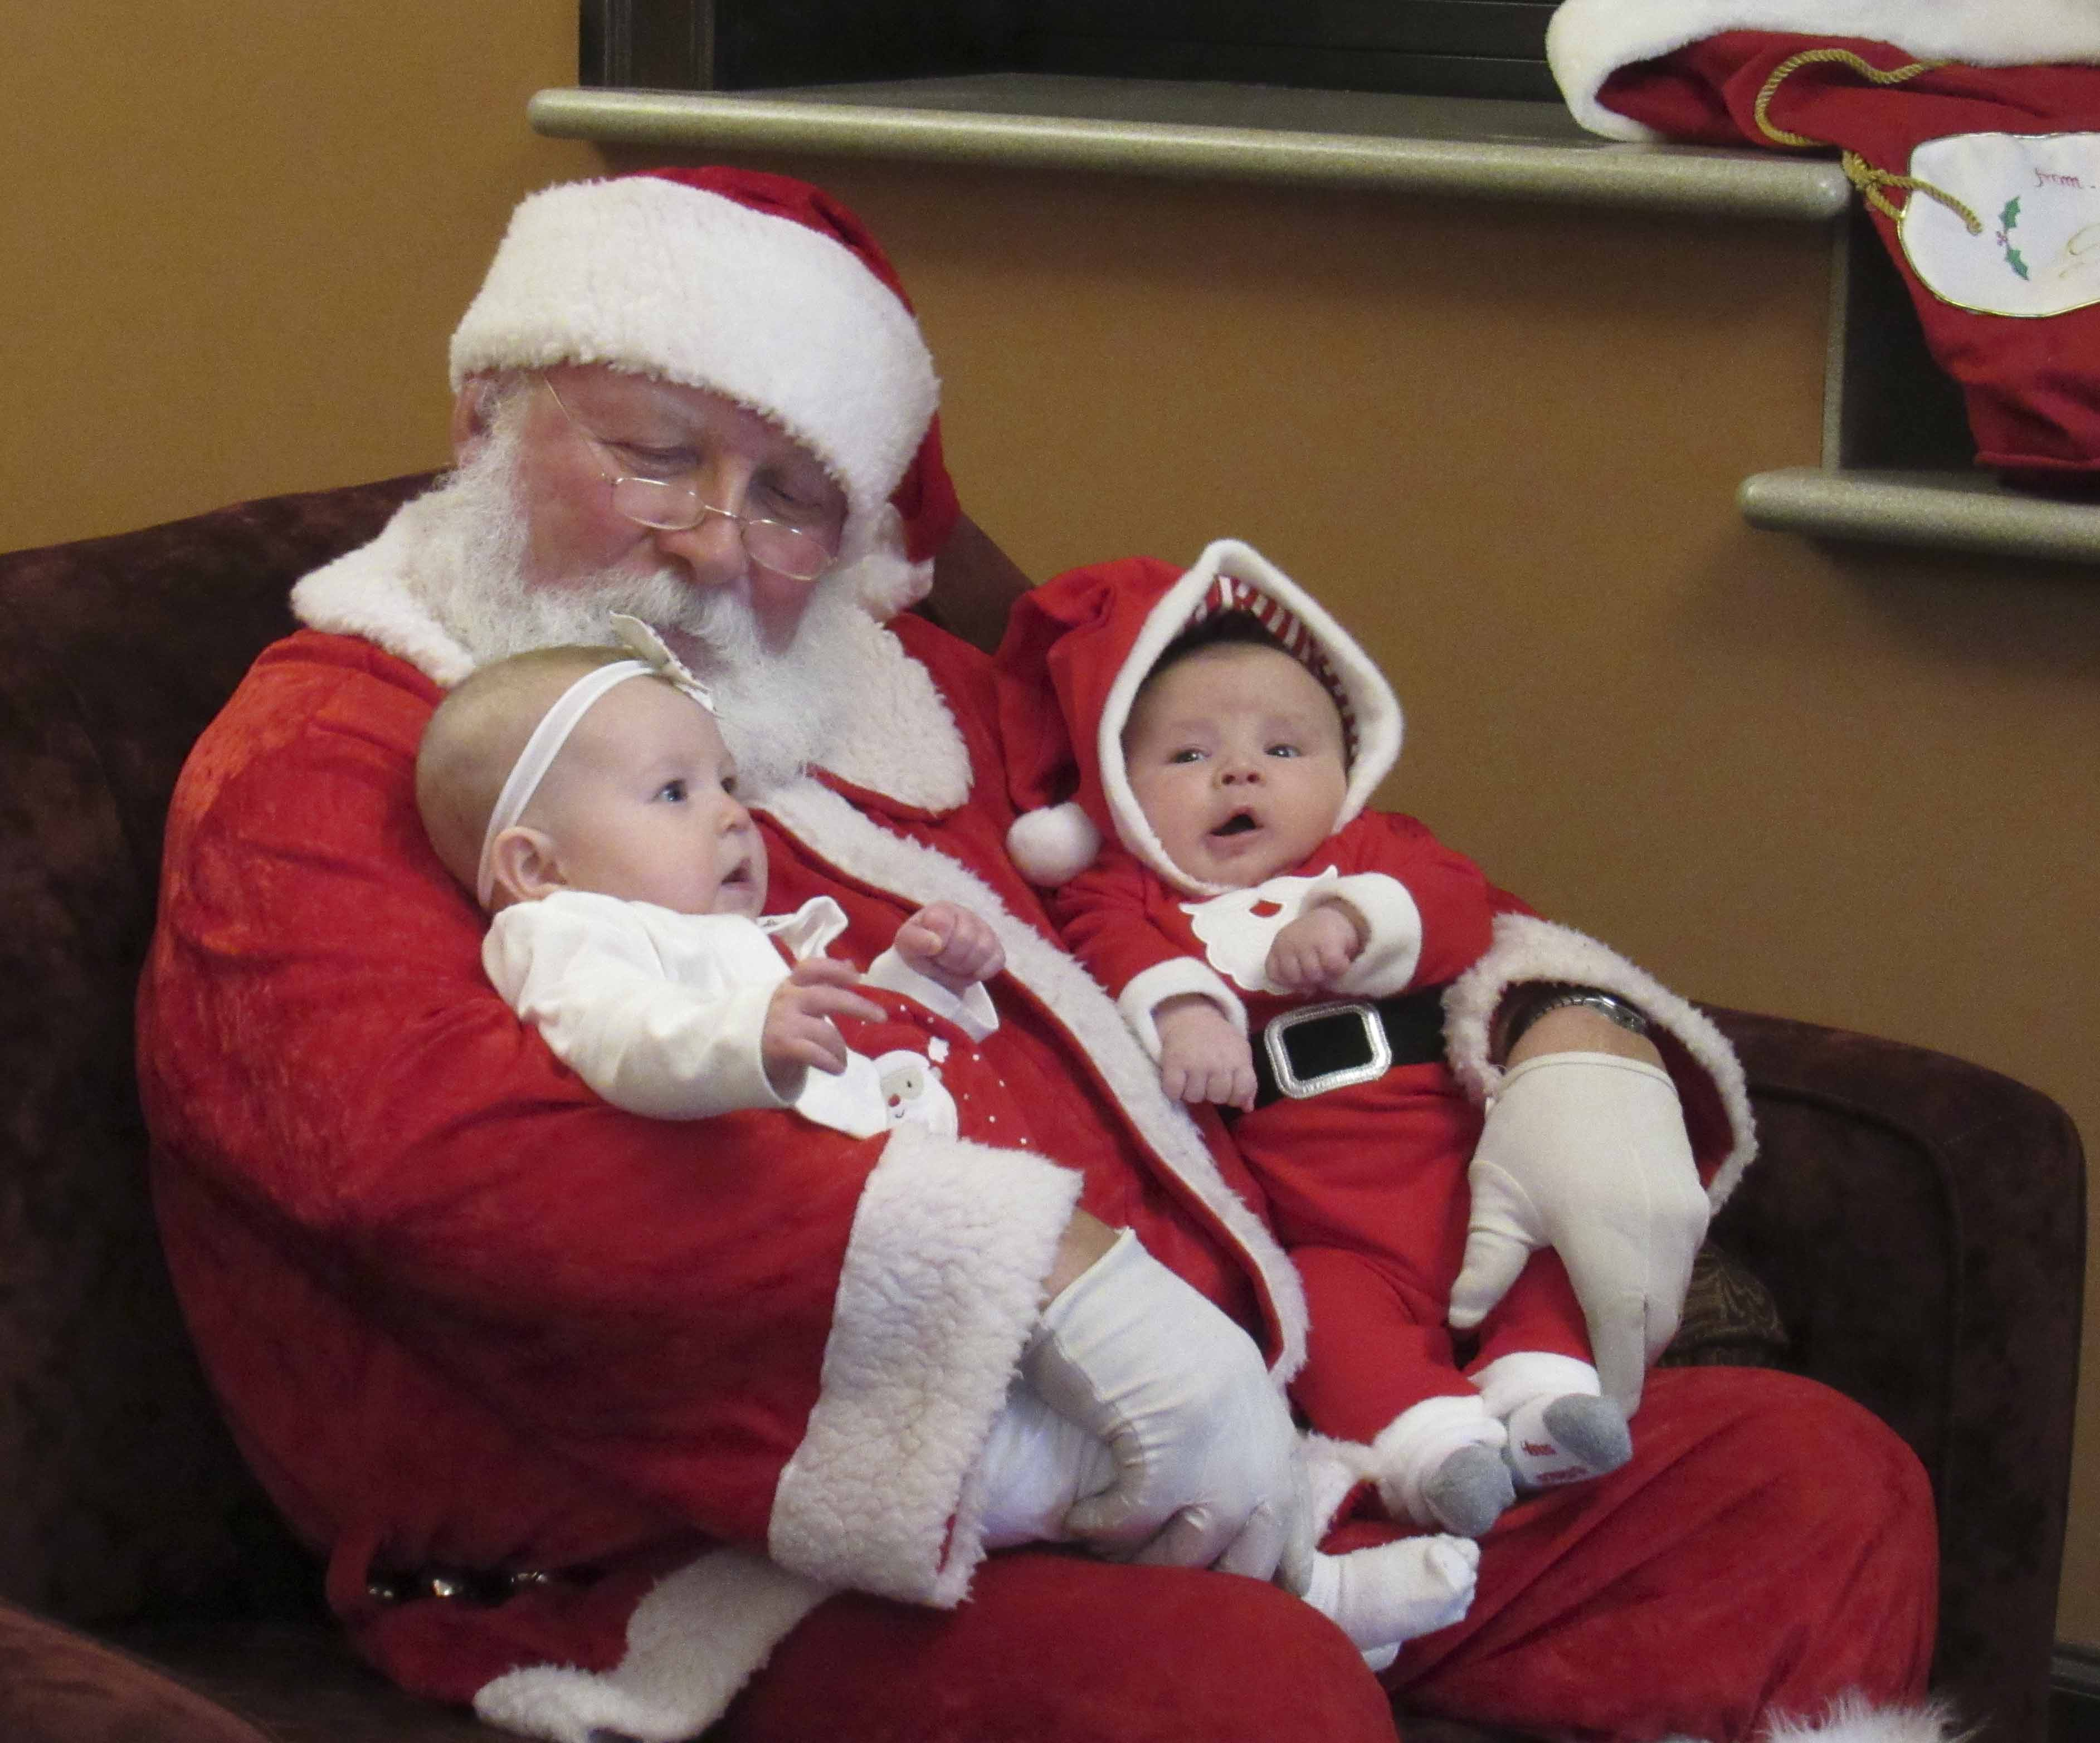 Harper Smith and Max Luensman were the youngest visitors the morning of Dec. 9 to see Santa at City Hall in Monticello.